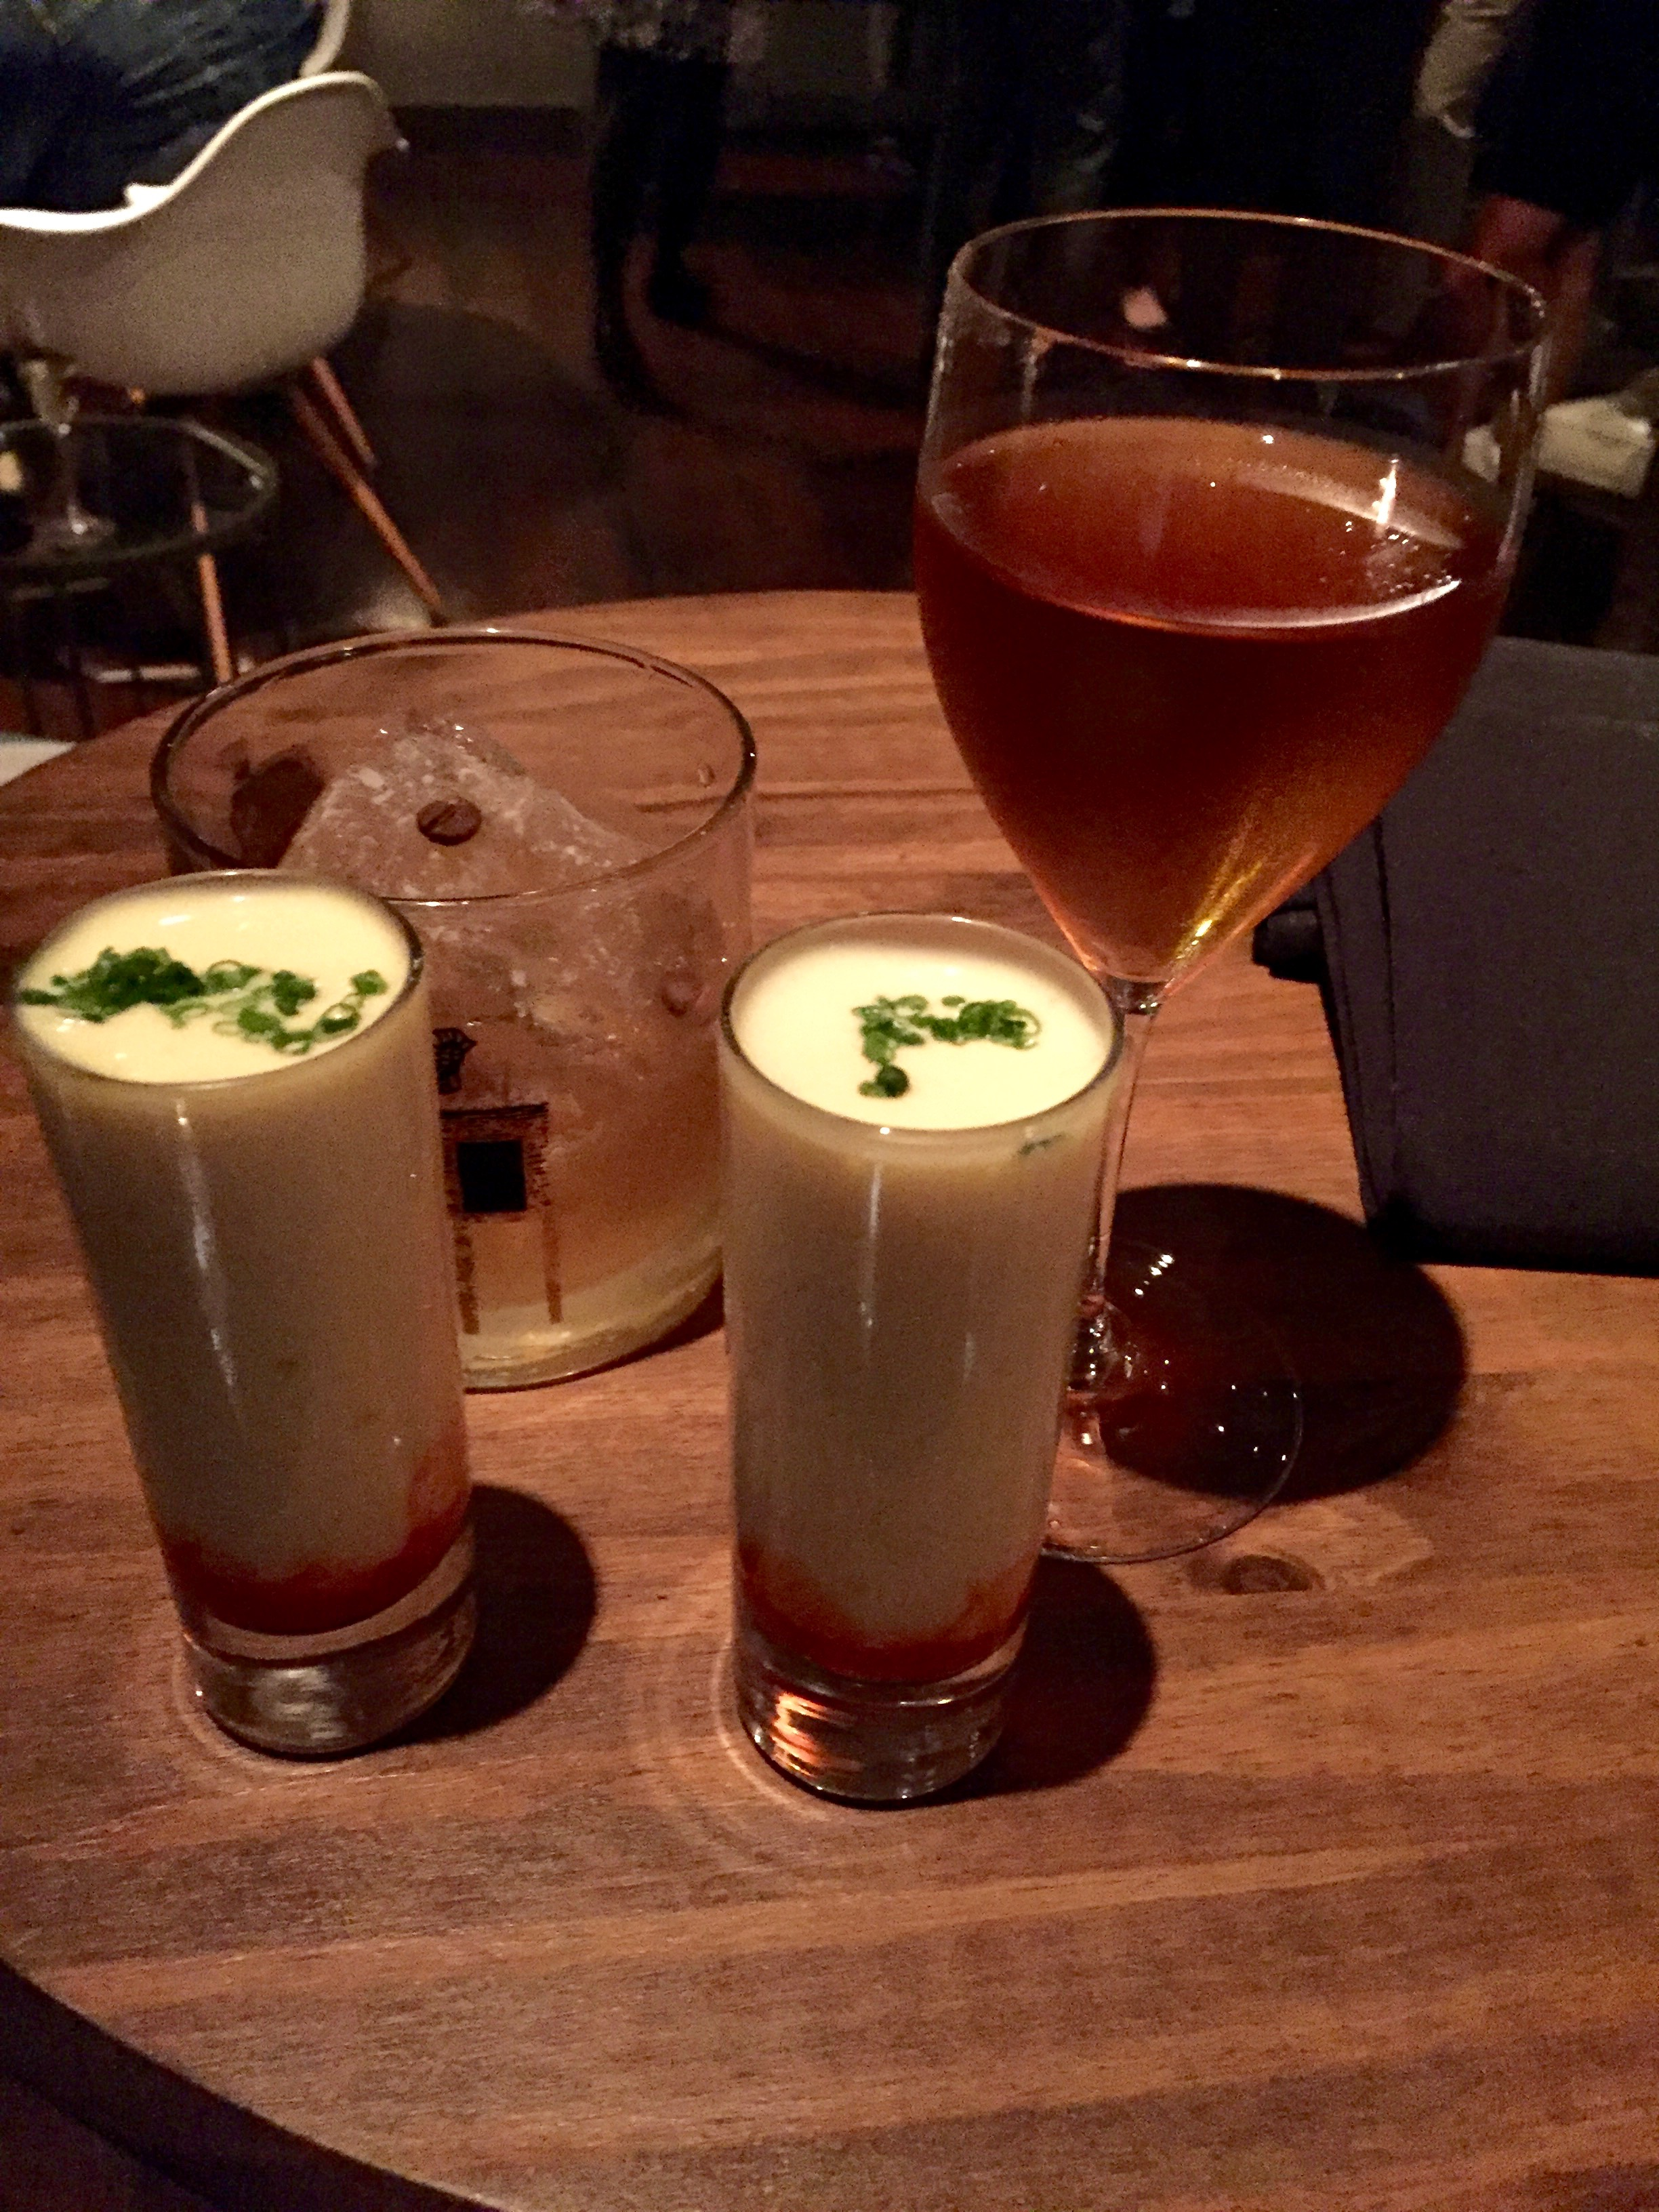 Cocktails & Whipped eggs with a sriracha sauce - I seriously dream of these shooters. They are so damn good.